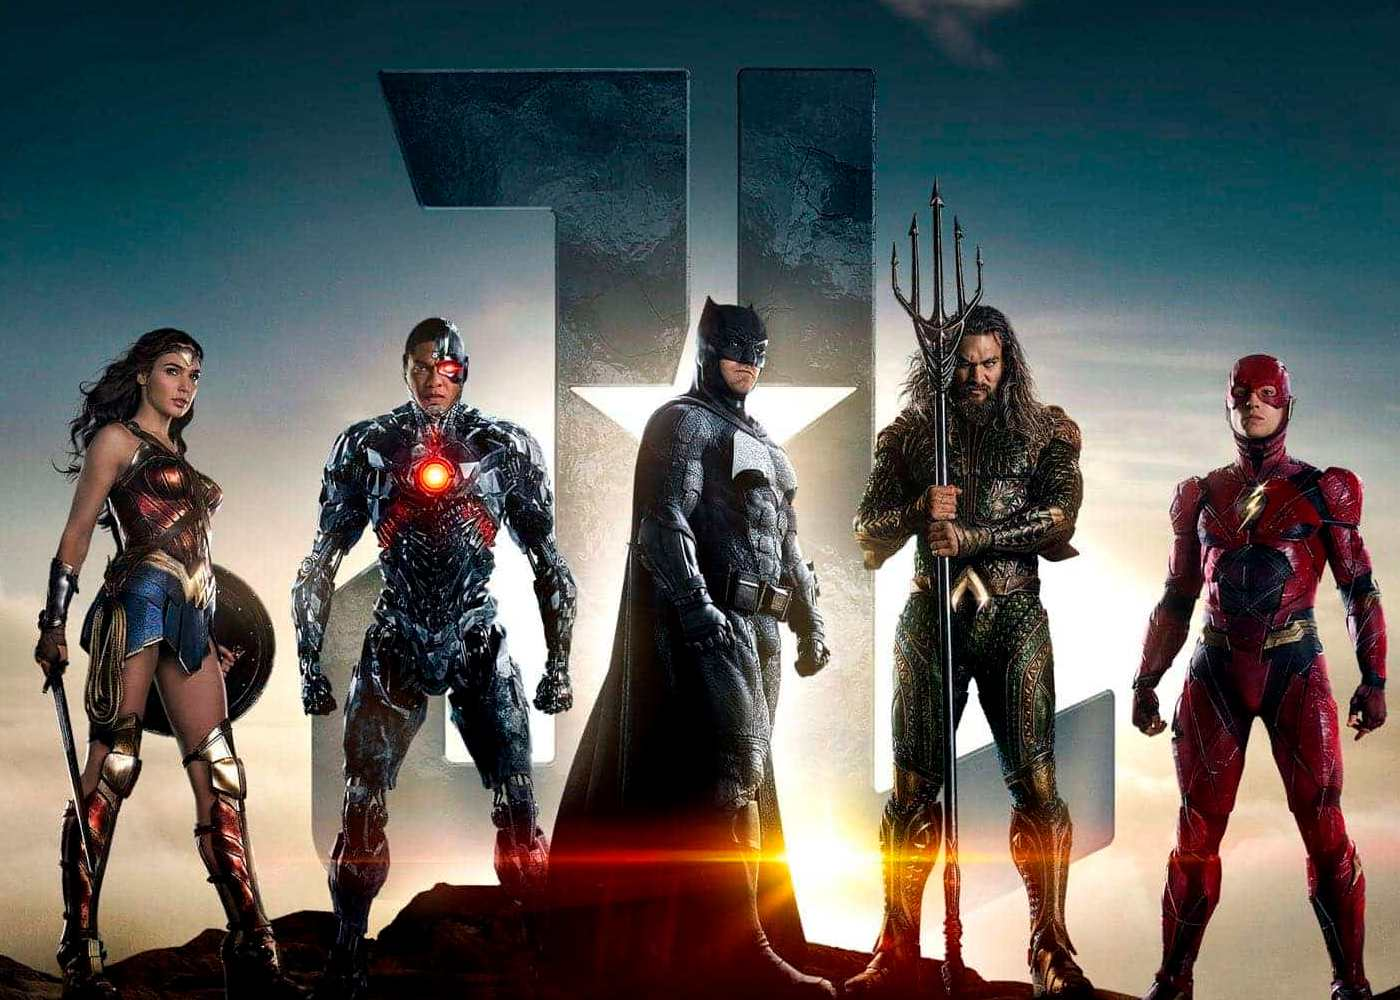 Justice League Rumors Suggest Reshoots Change the Ending